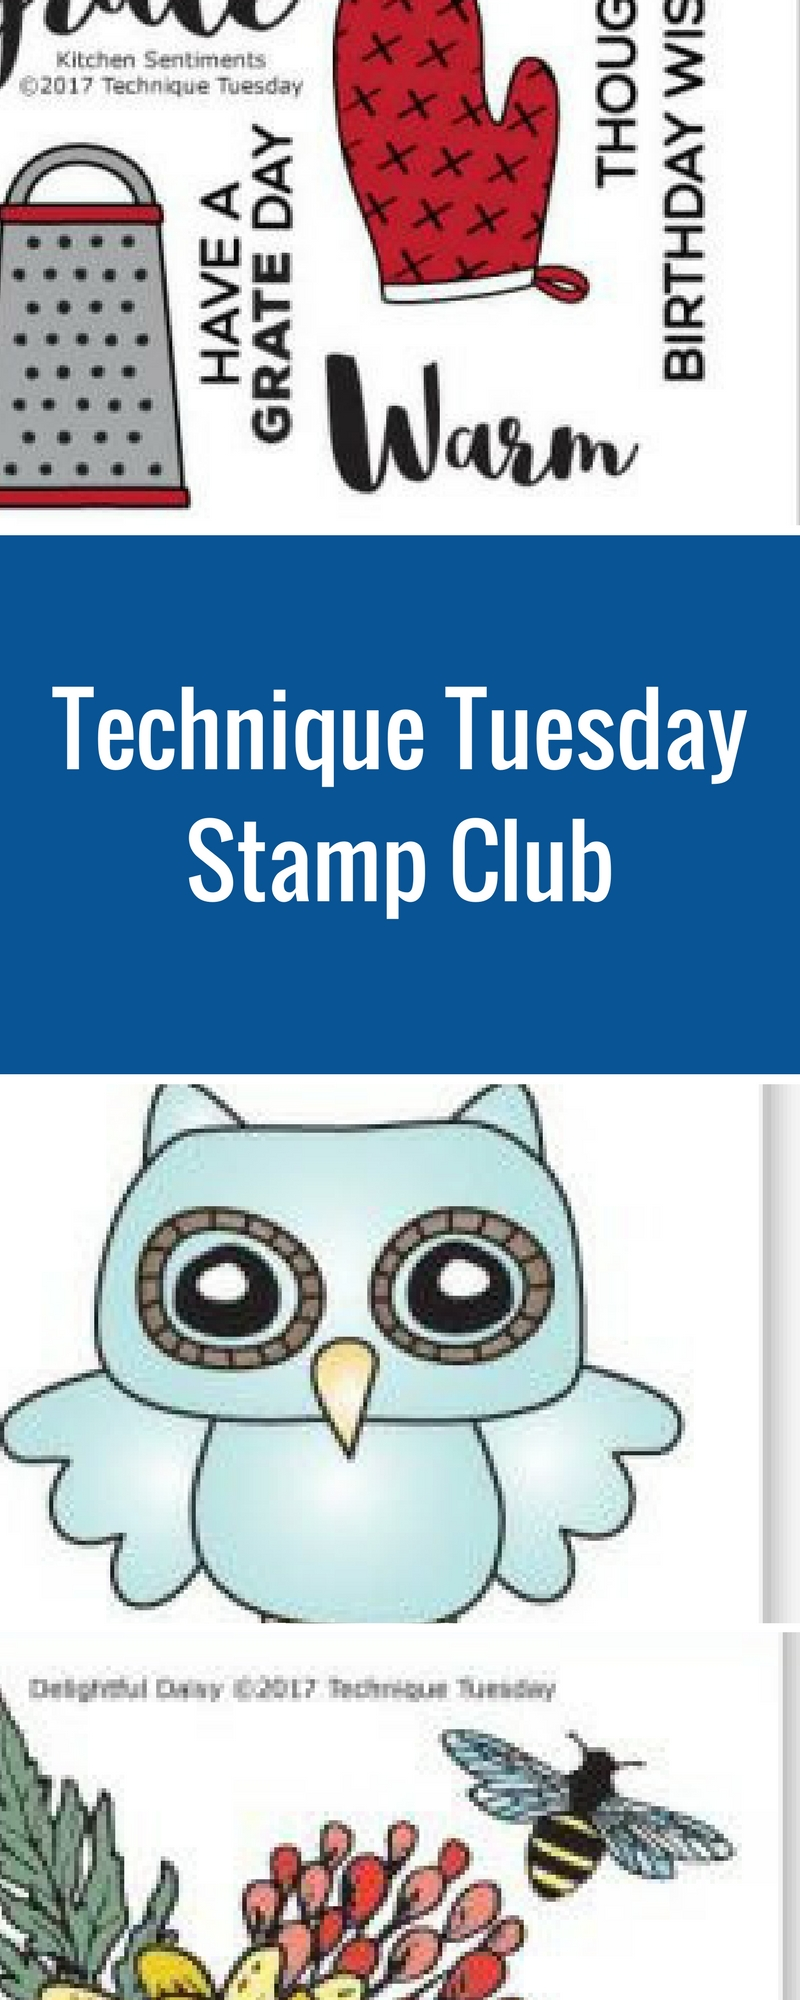 Technique Tuesday Stamps for Scrapbooking and Card Making | Creative Scrapbooker Magazine